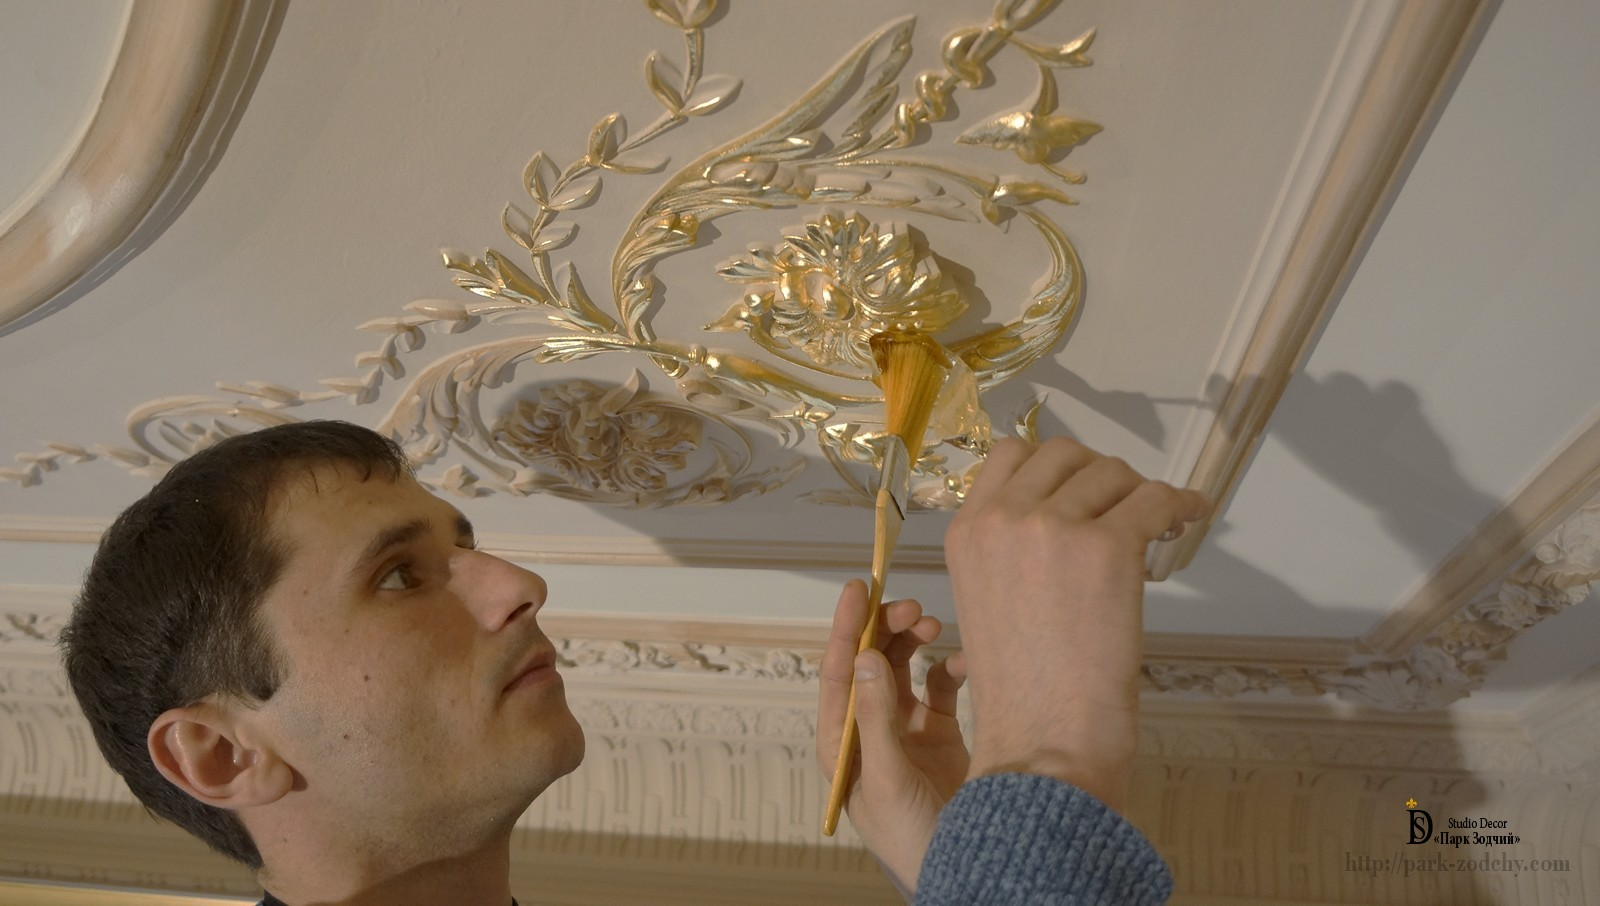 The technique of gilding plaster moldings